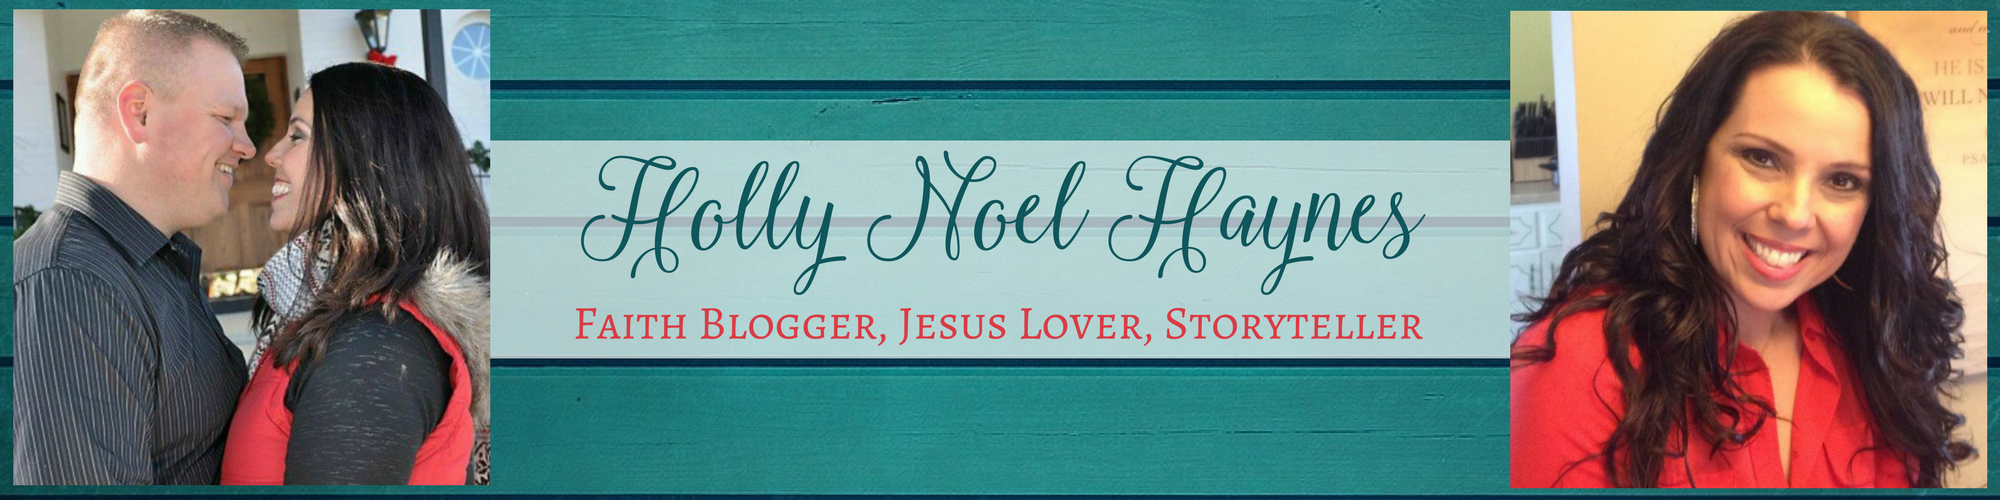 Holly Noel Haynes